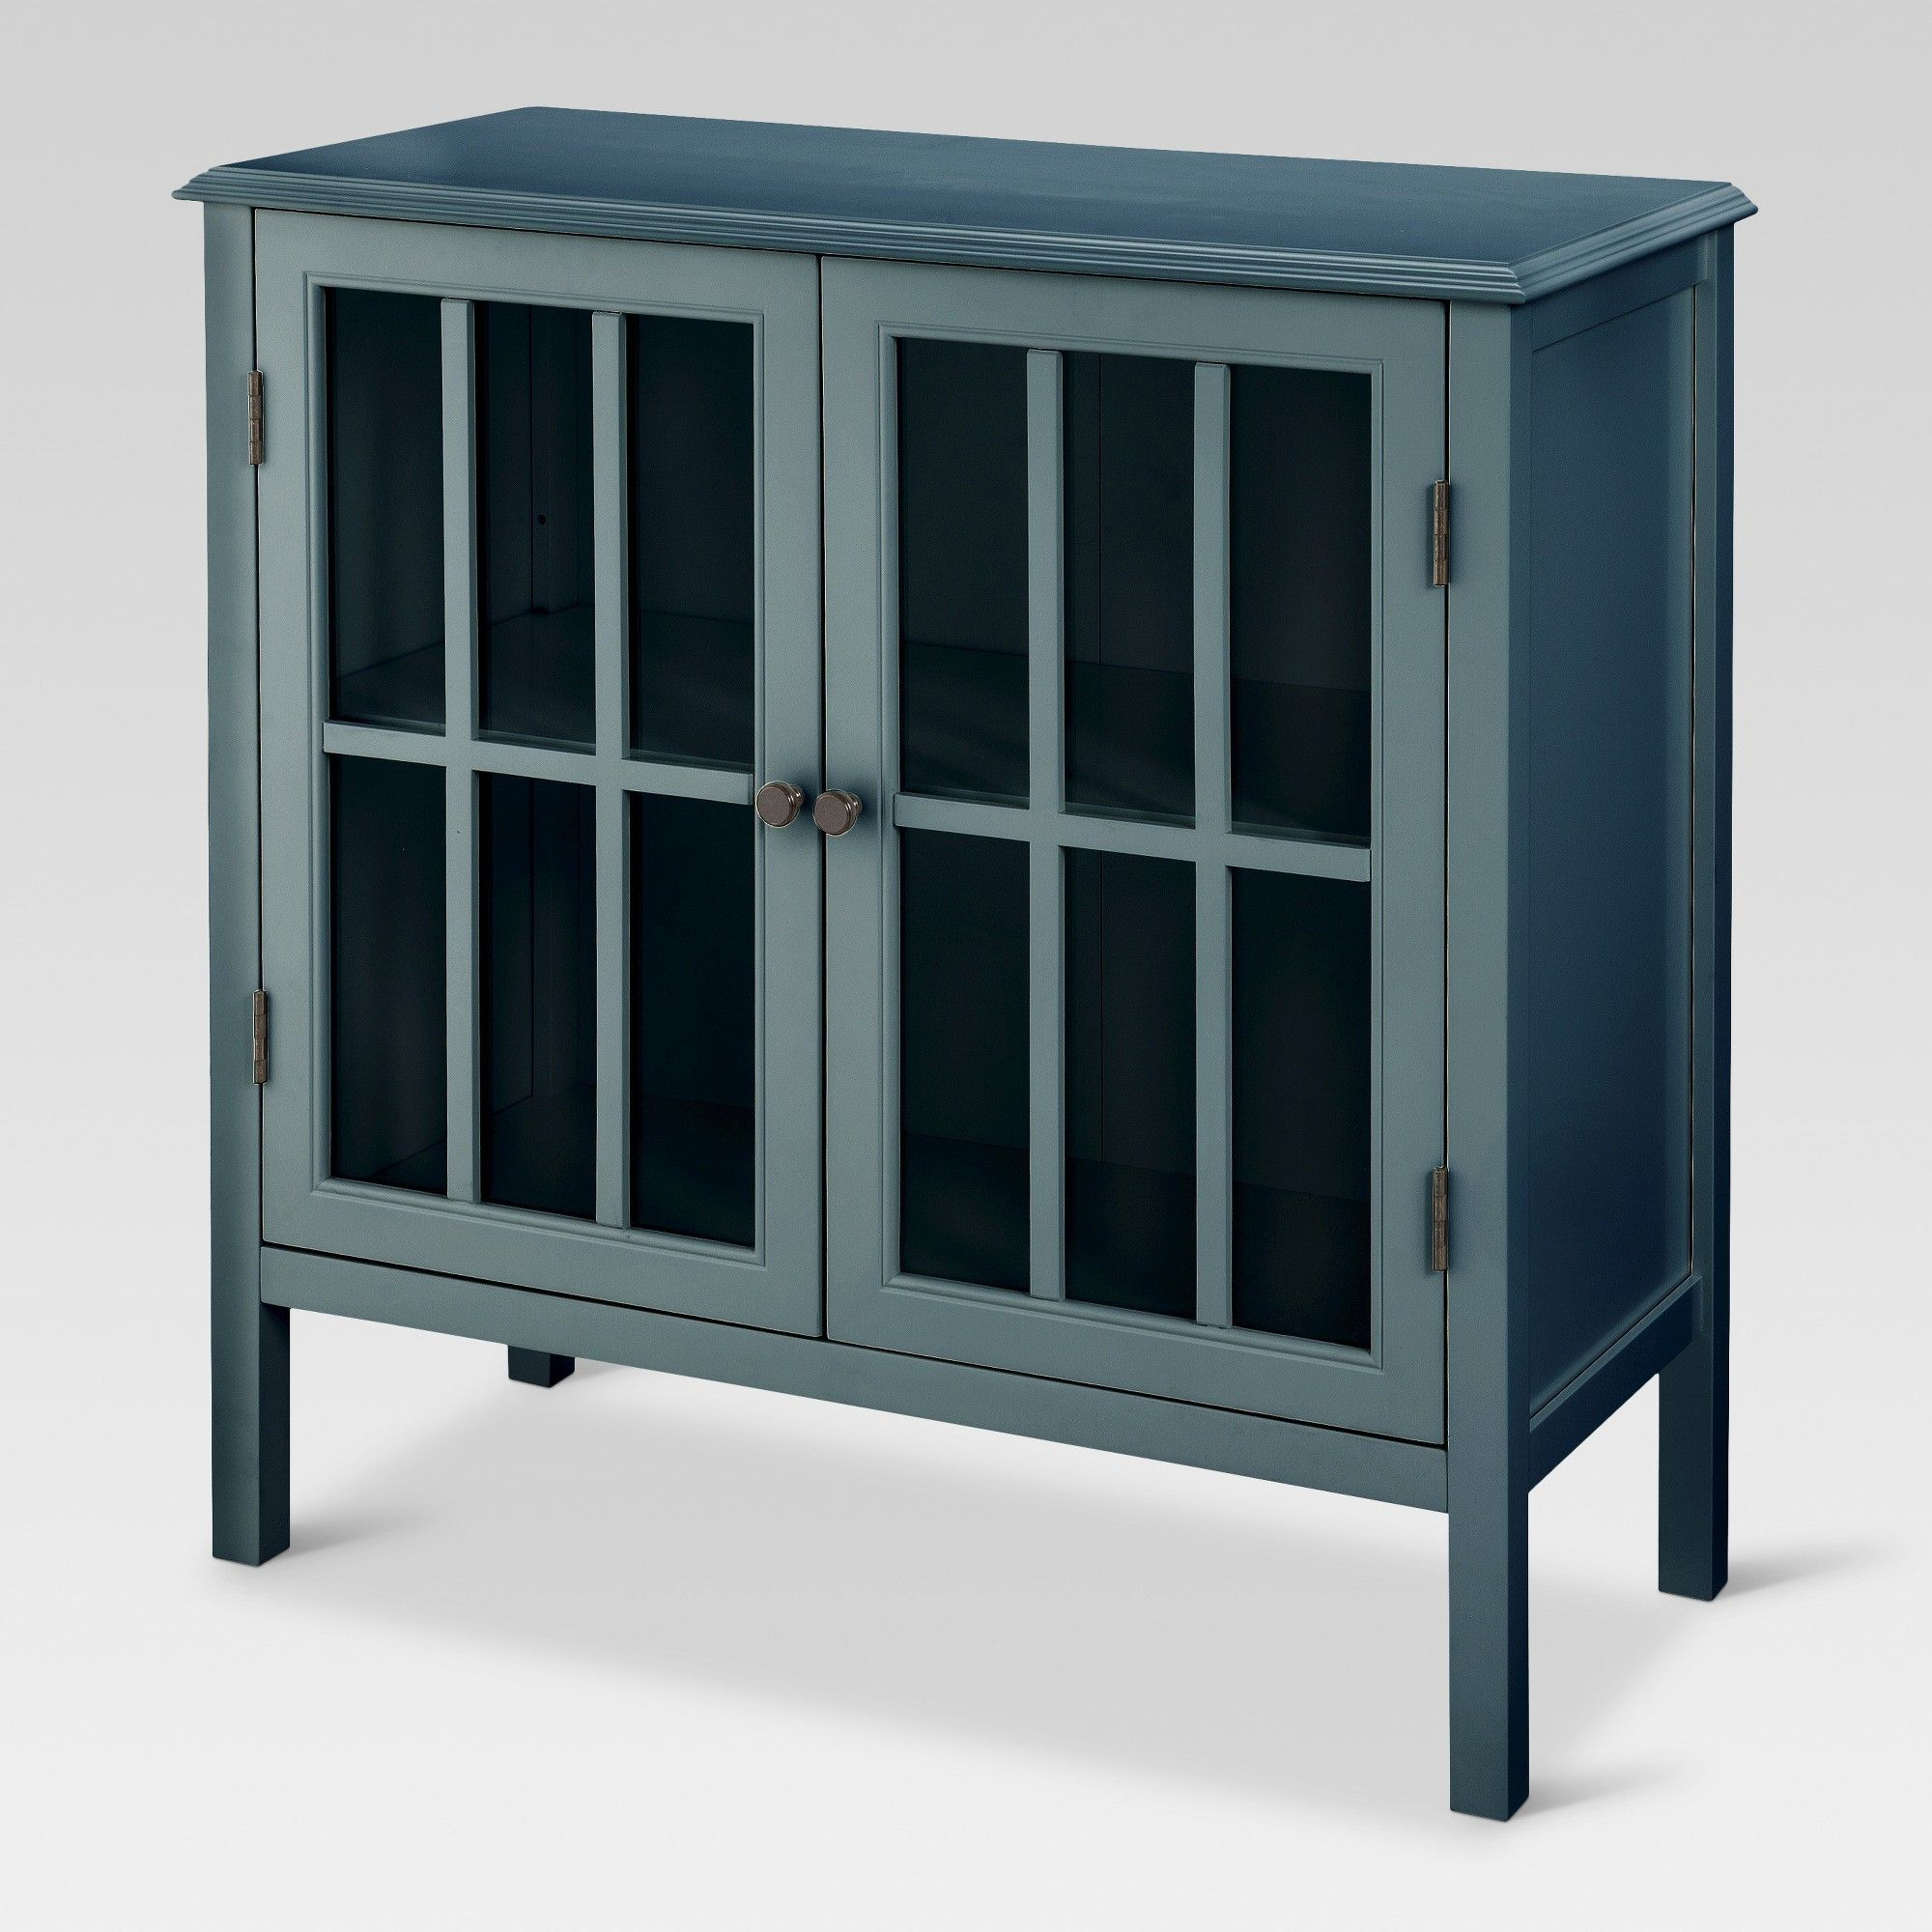 Windham 2 Door Accent Cabinet Slate Grey Threshold Storage Cabinets Living Room Cabinets Teal Cabinets